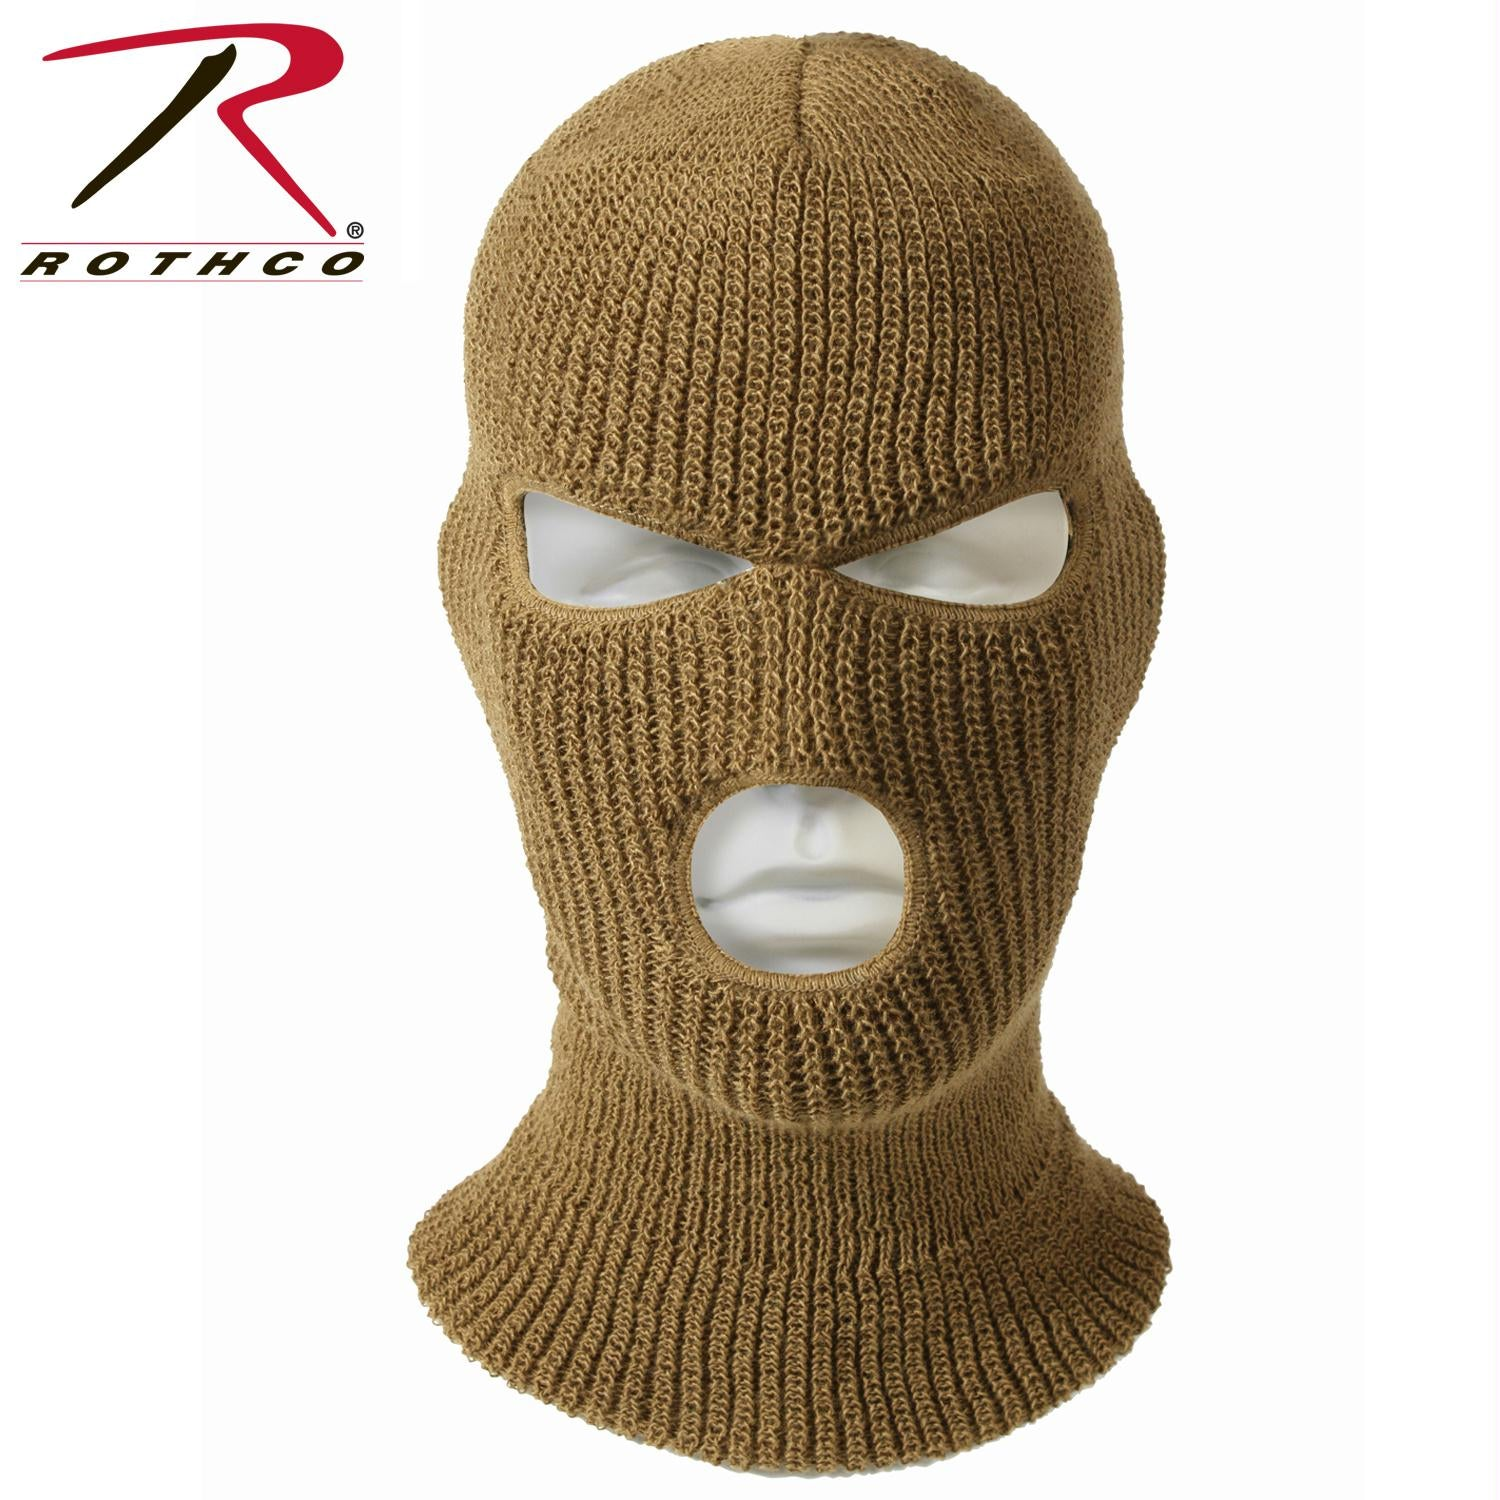 Rothco 3 Hole Face Mask